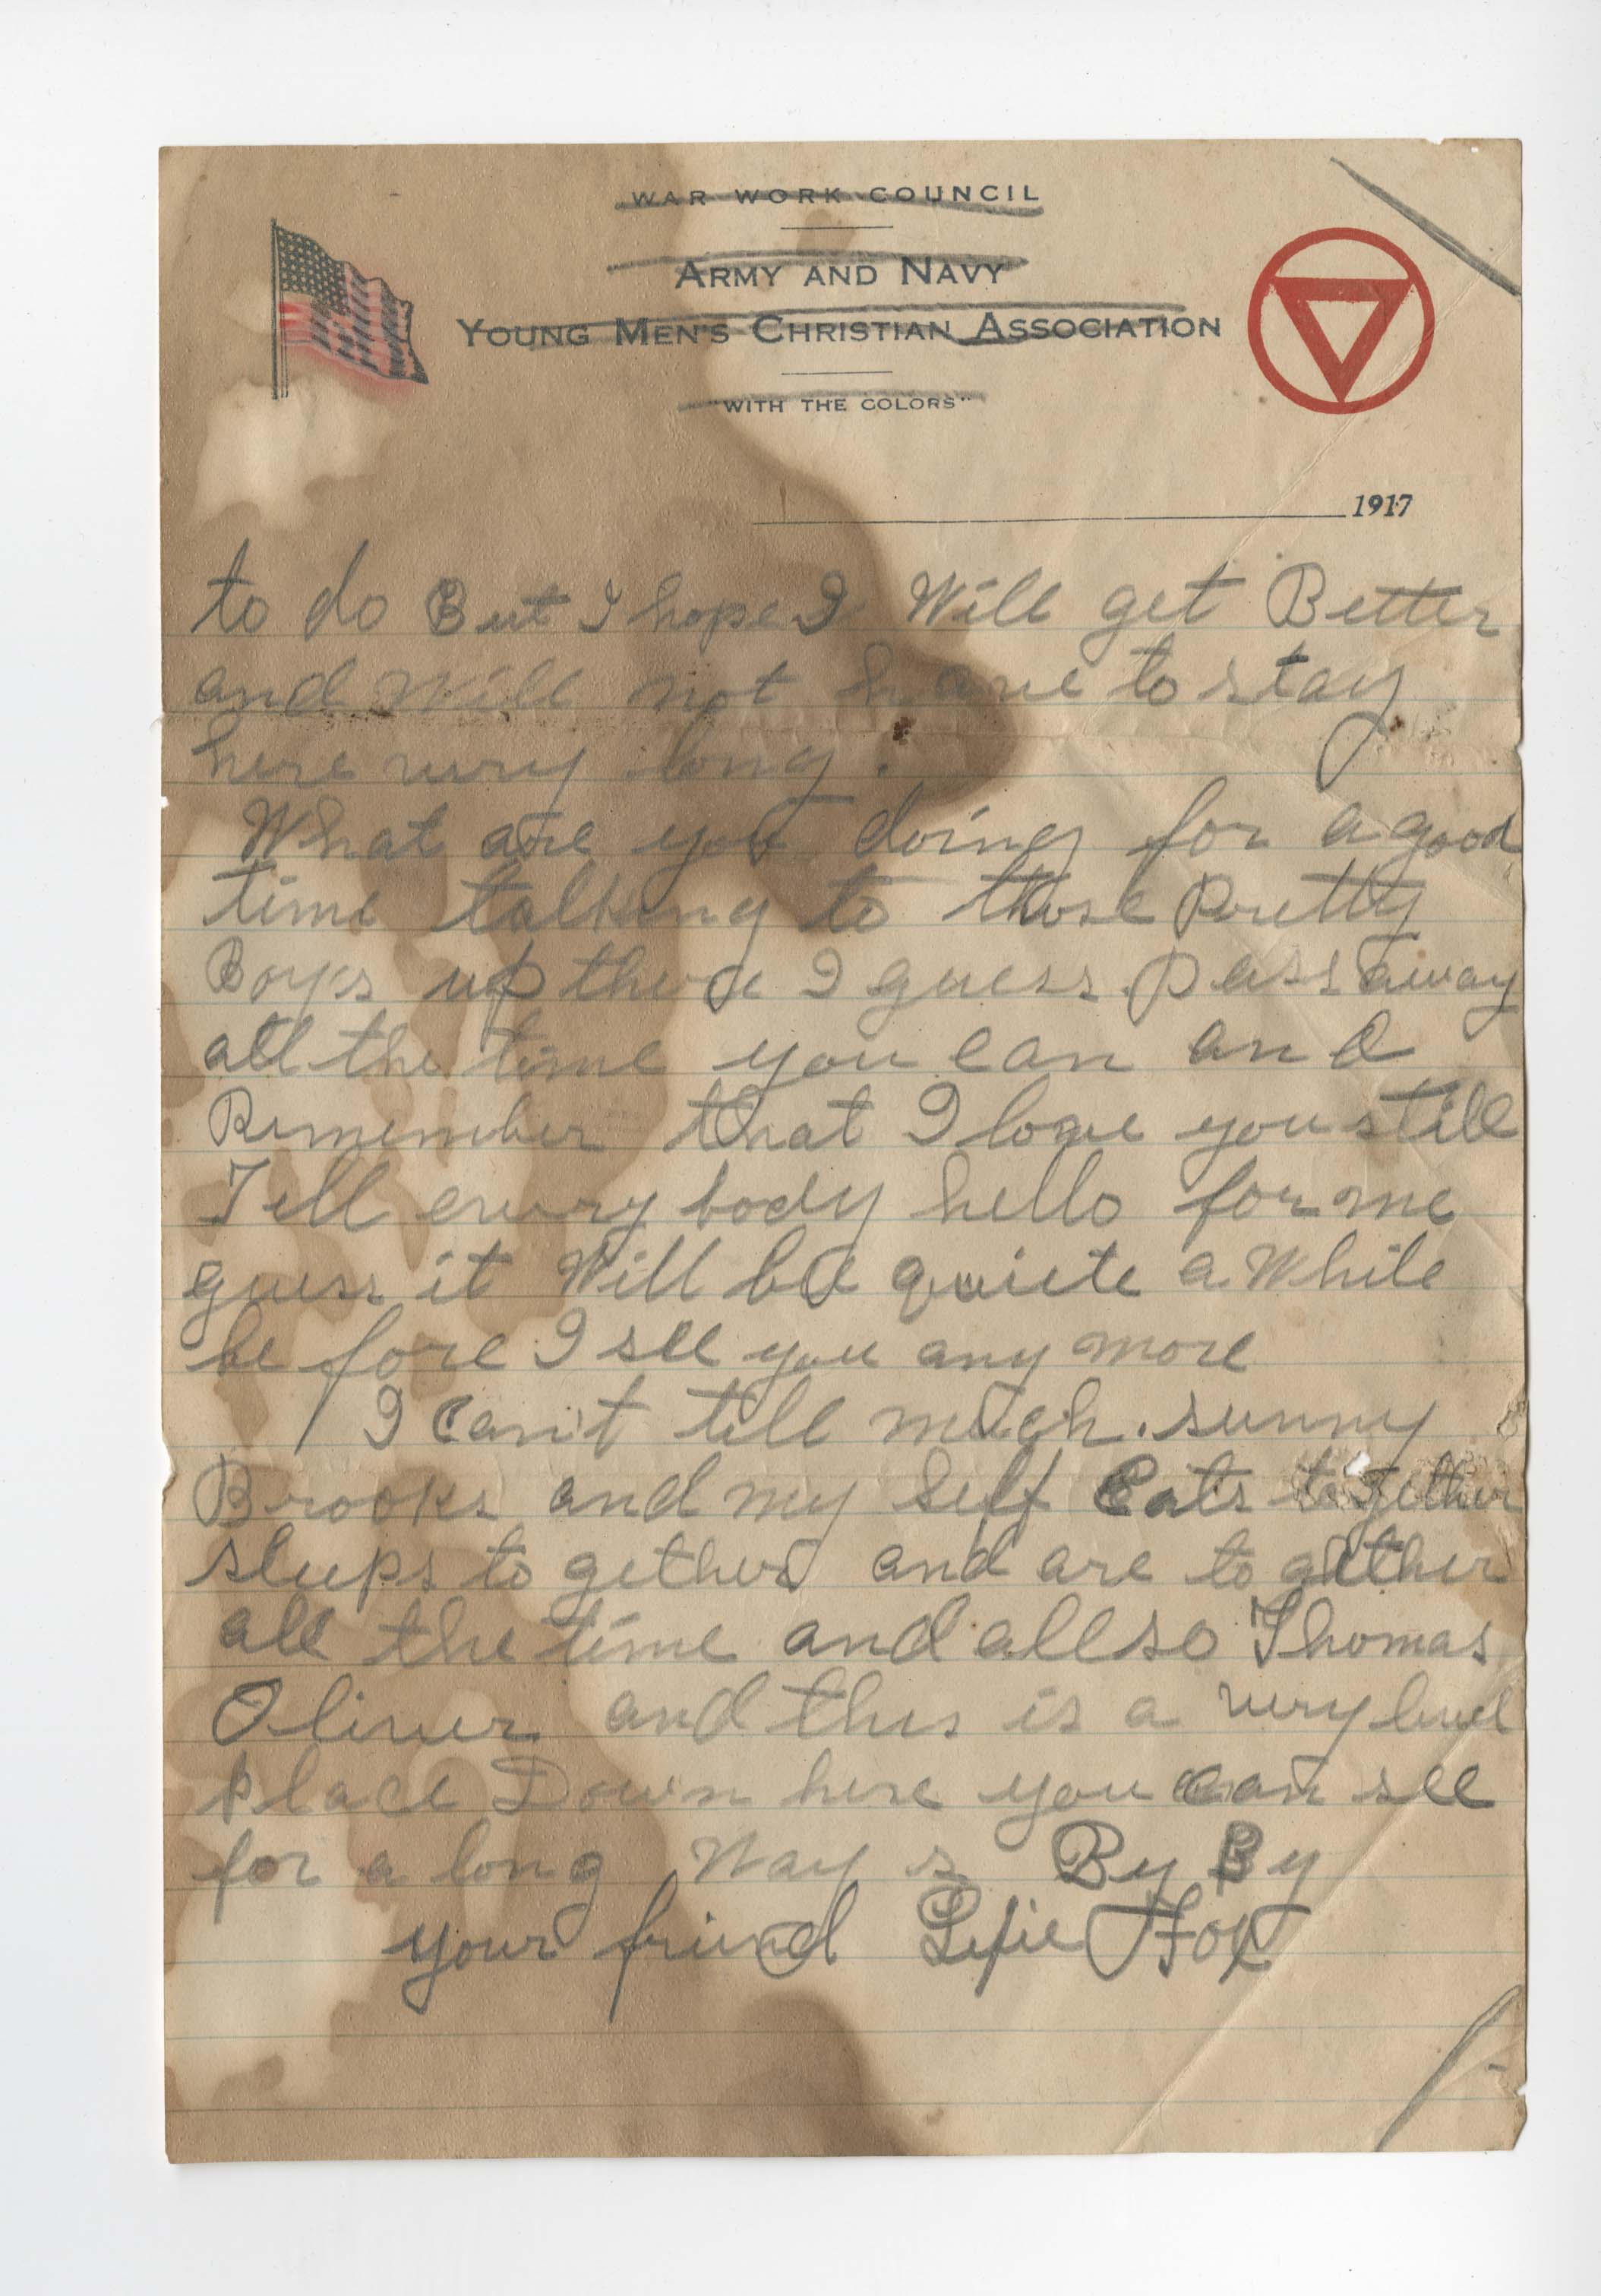 Ms2017-004_TurnerFamilyPapers_Letter_1917_0206c